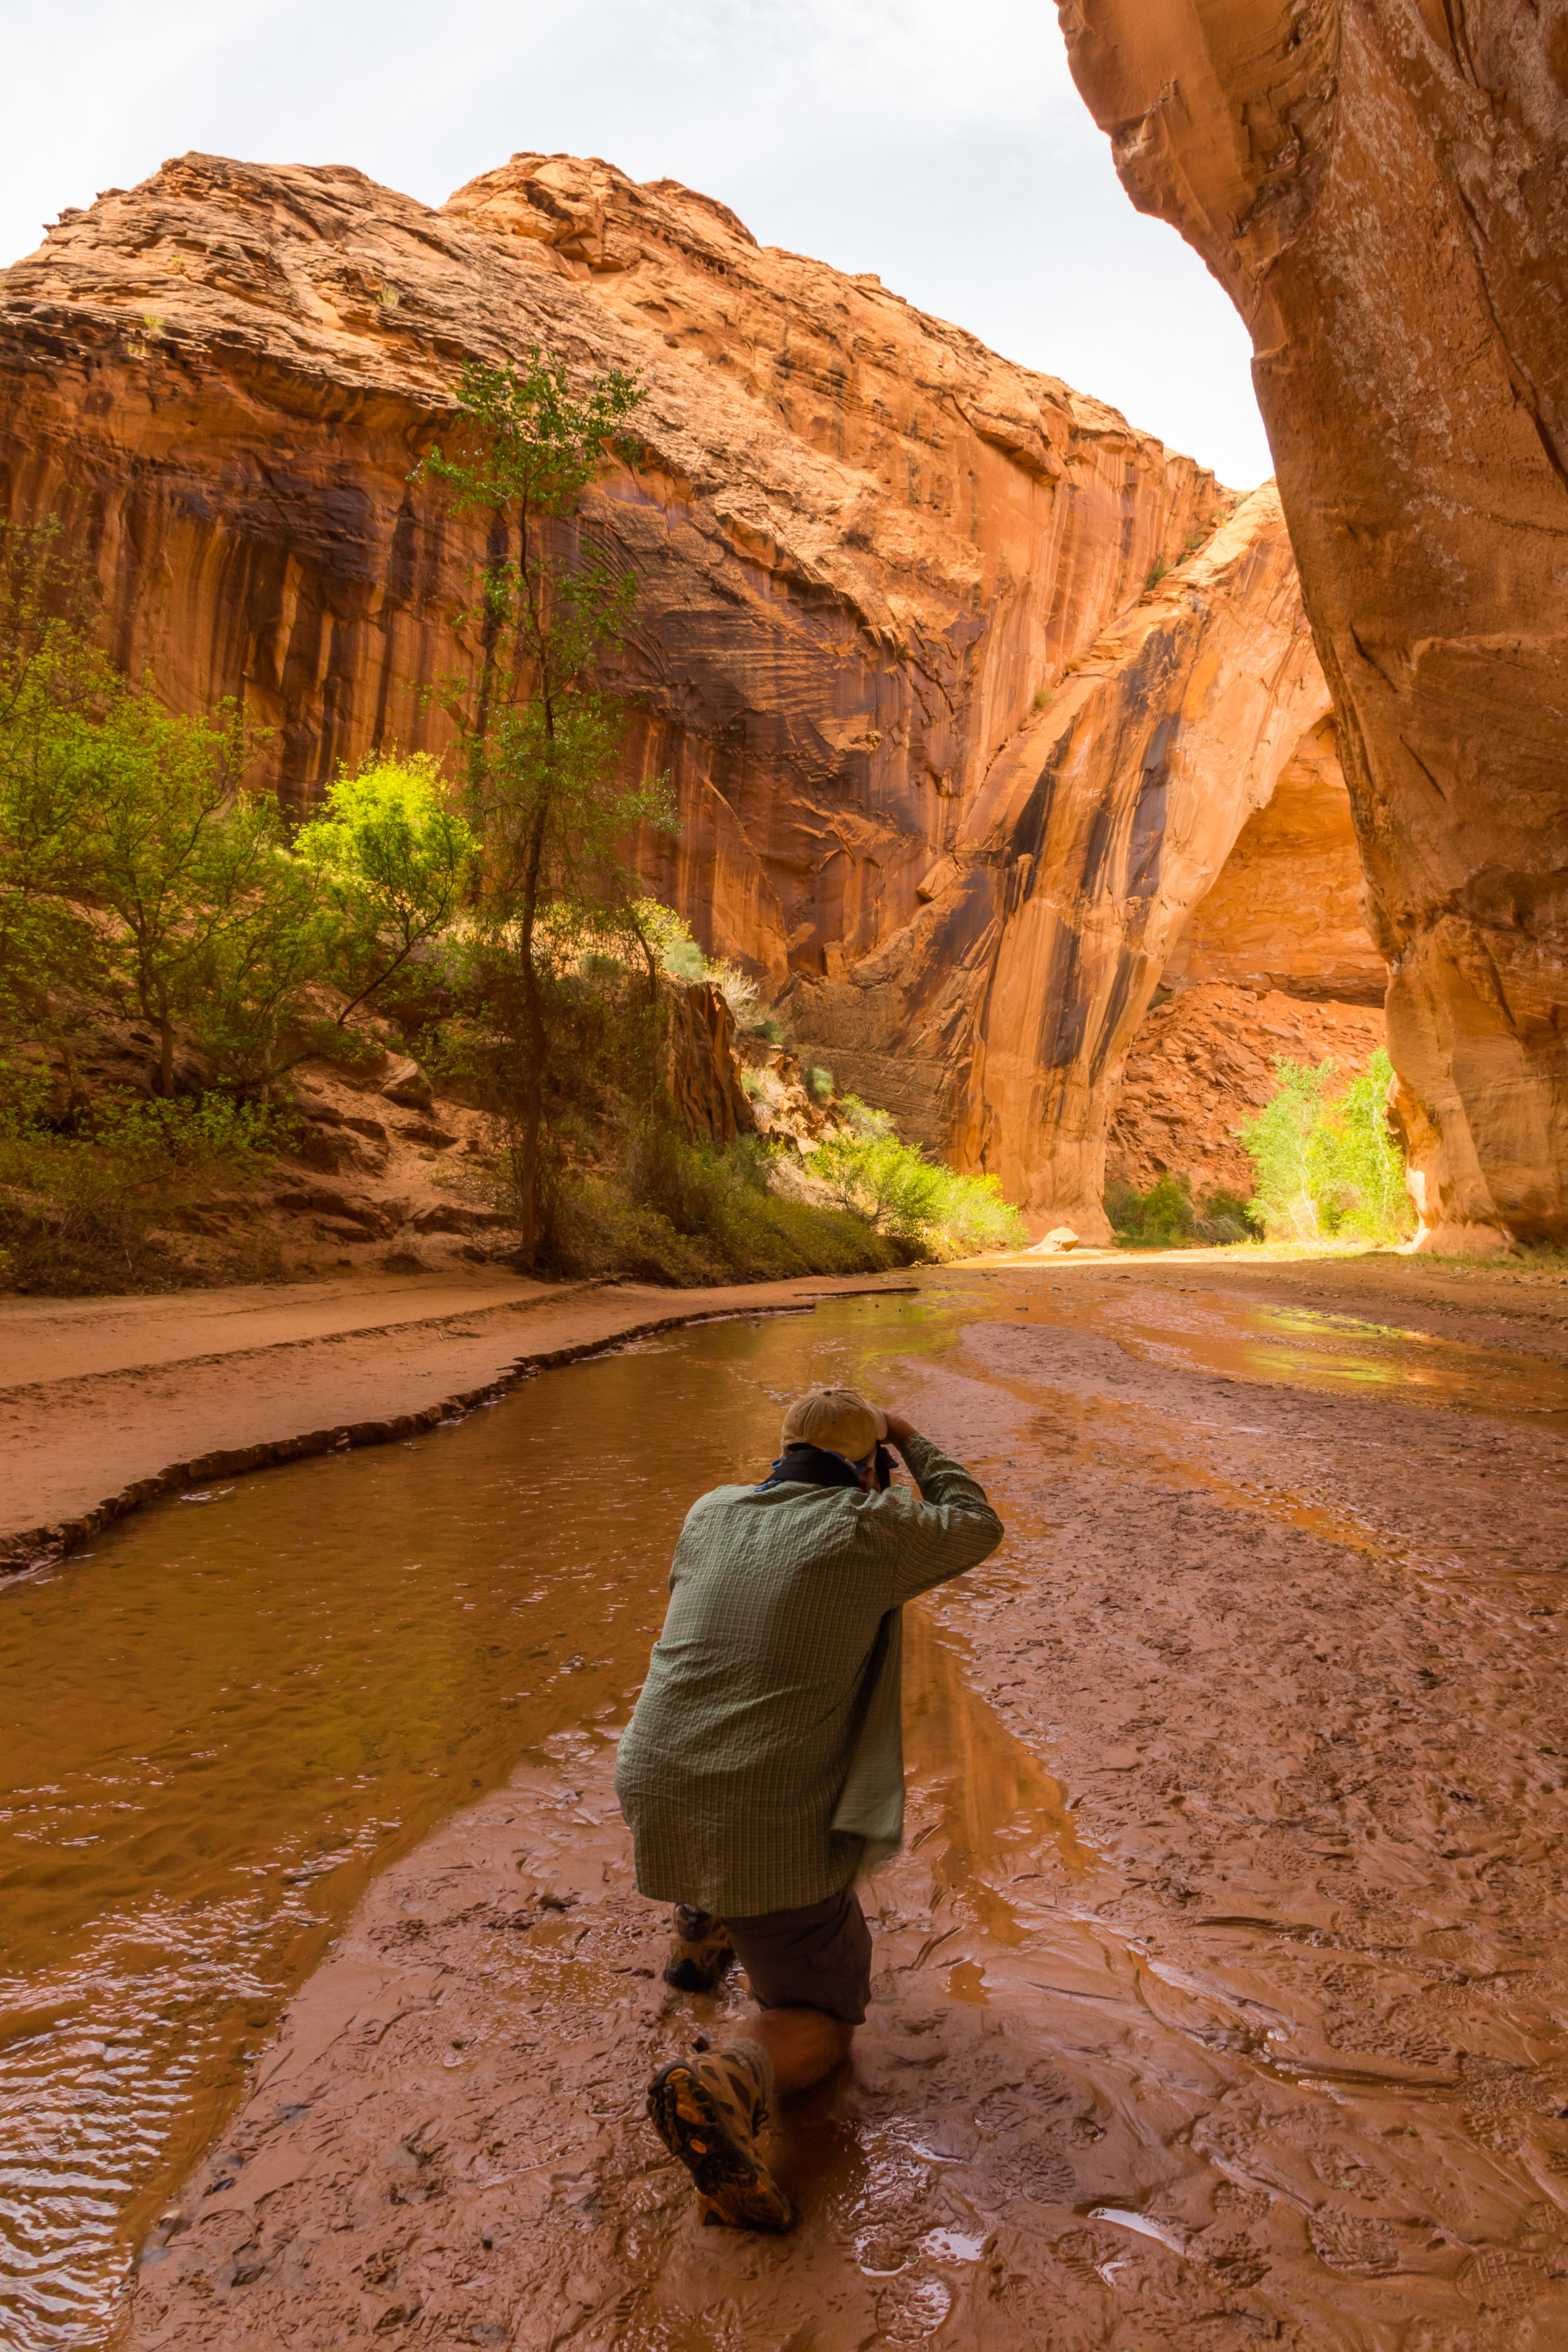 Coyote Gulch, Dave, Image # 1151